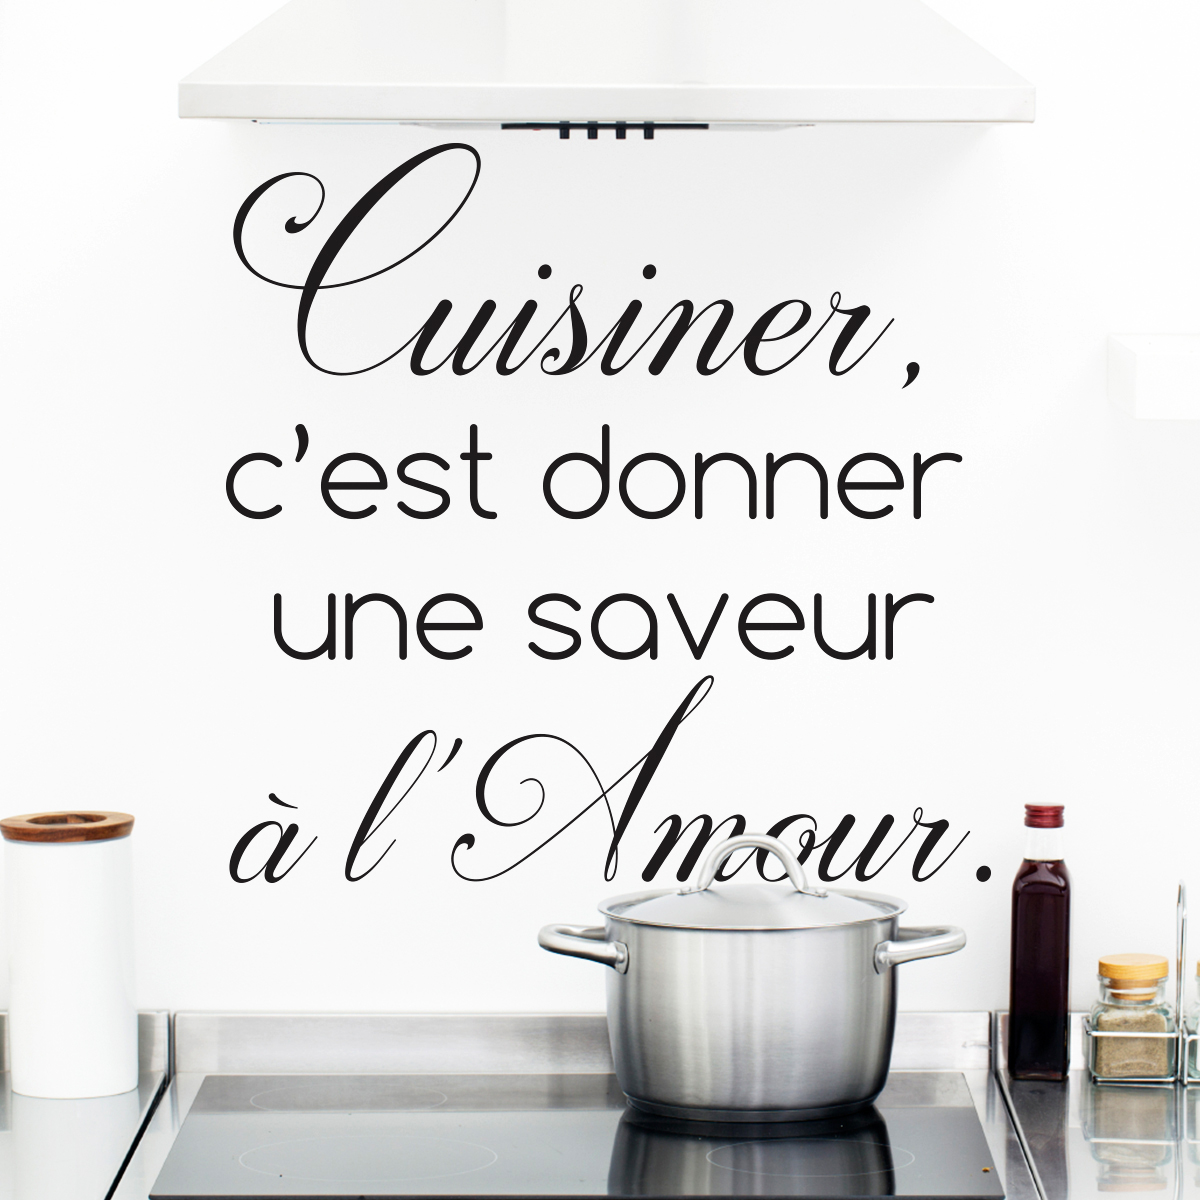 sticker citation cuisine cuisiner c 39 est donner une saveur stickers citations fran ais. Black Bedroom Furniture Sets. Home Design Ideas